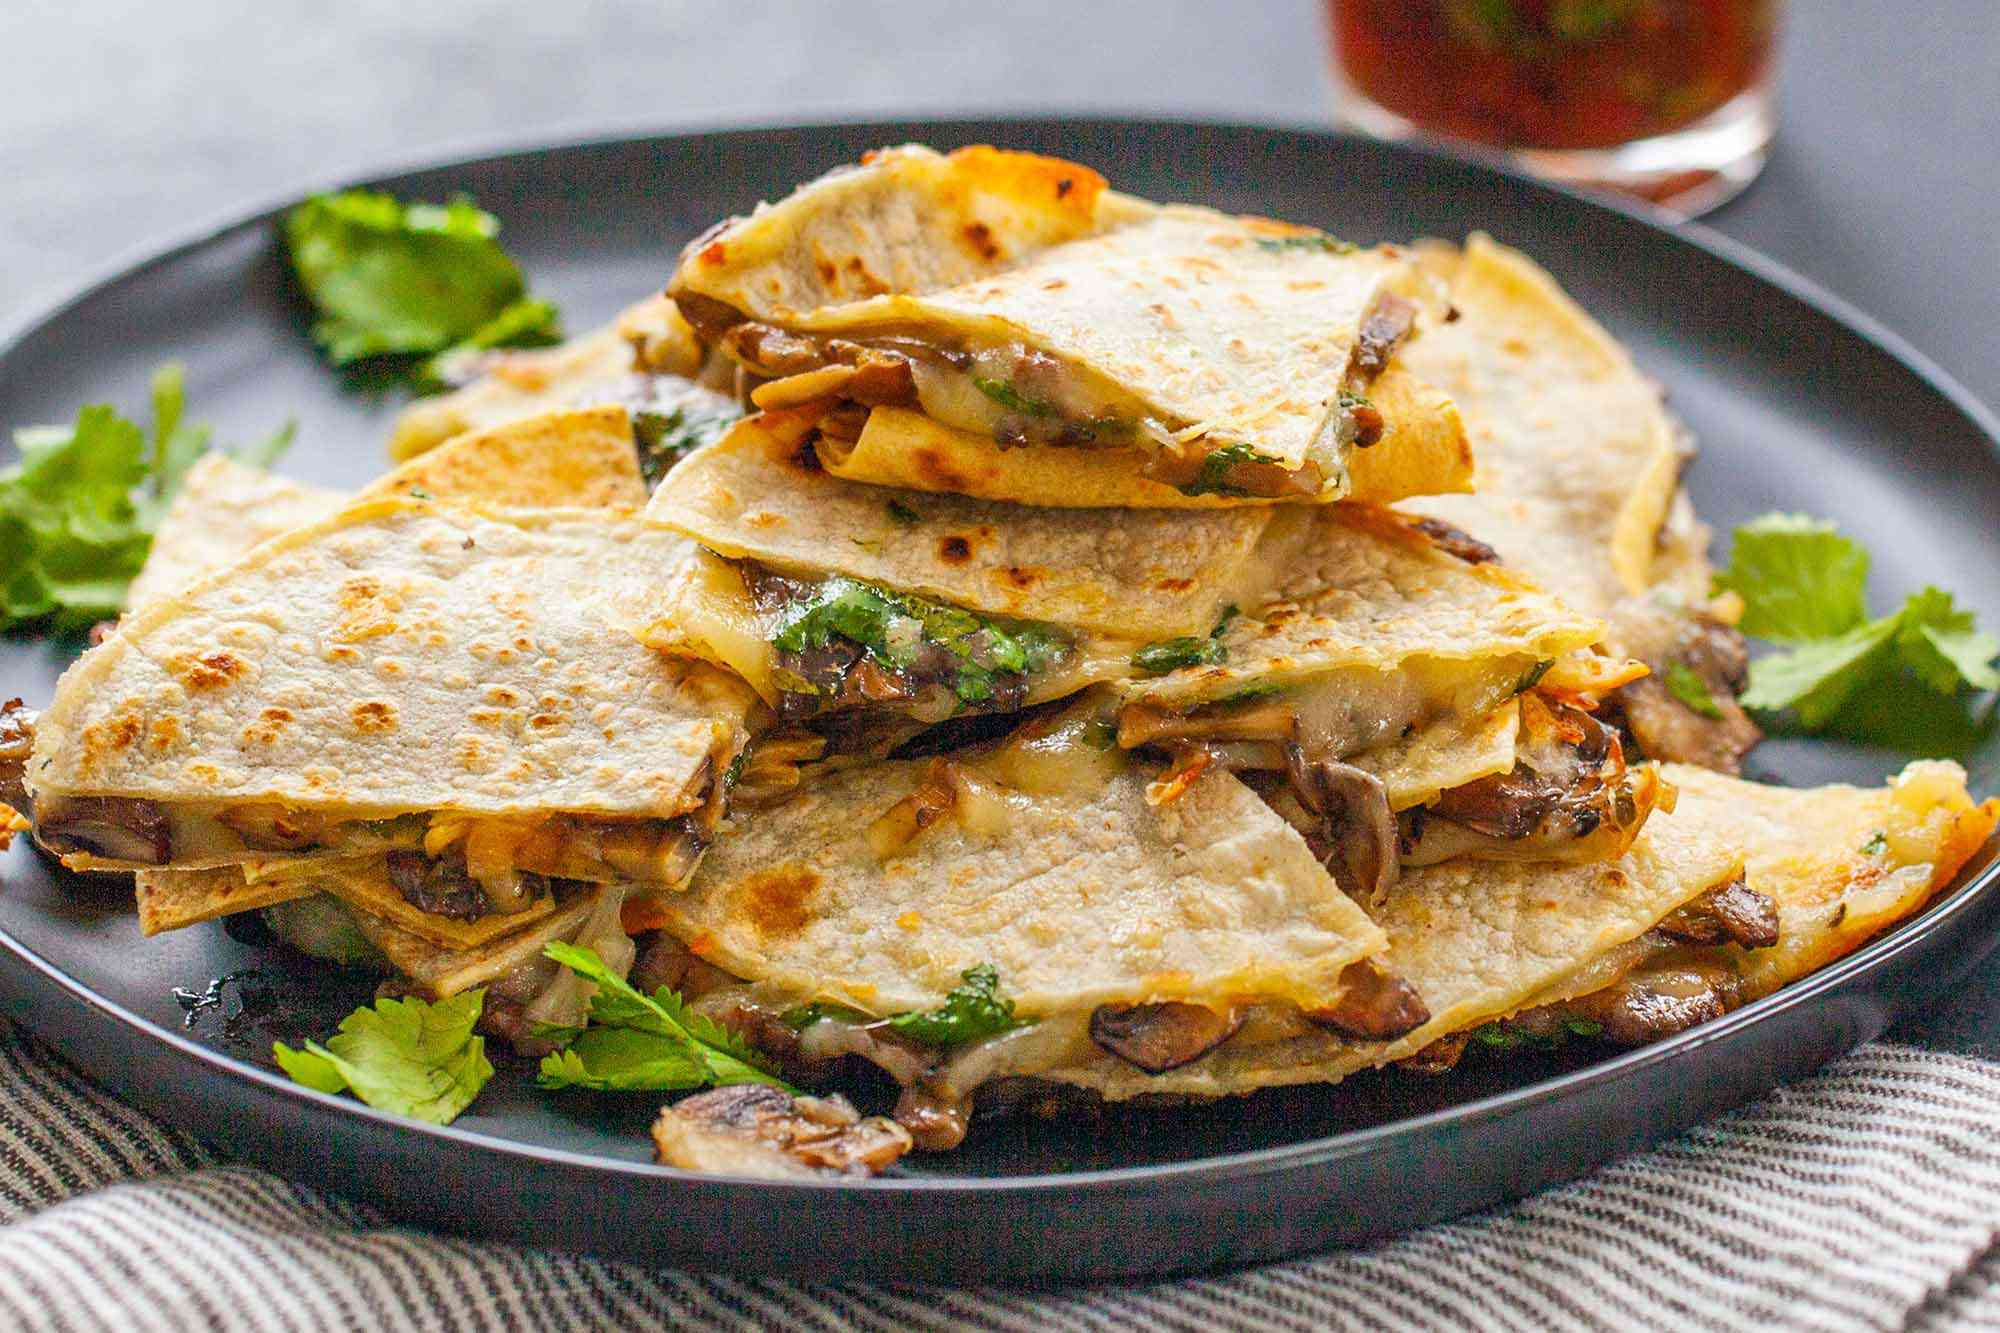 Crispy Cheese And Mushroom Quesadillas Recipe